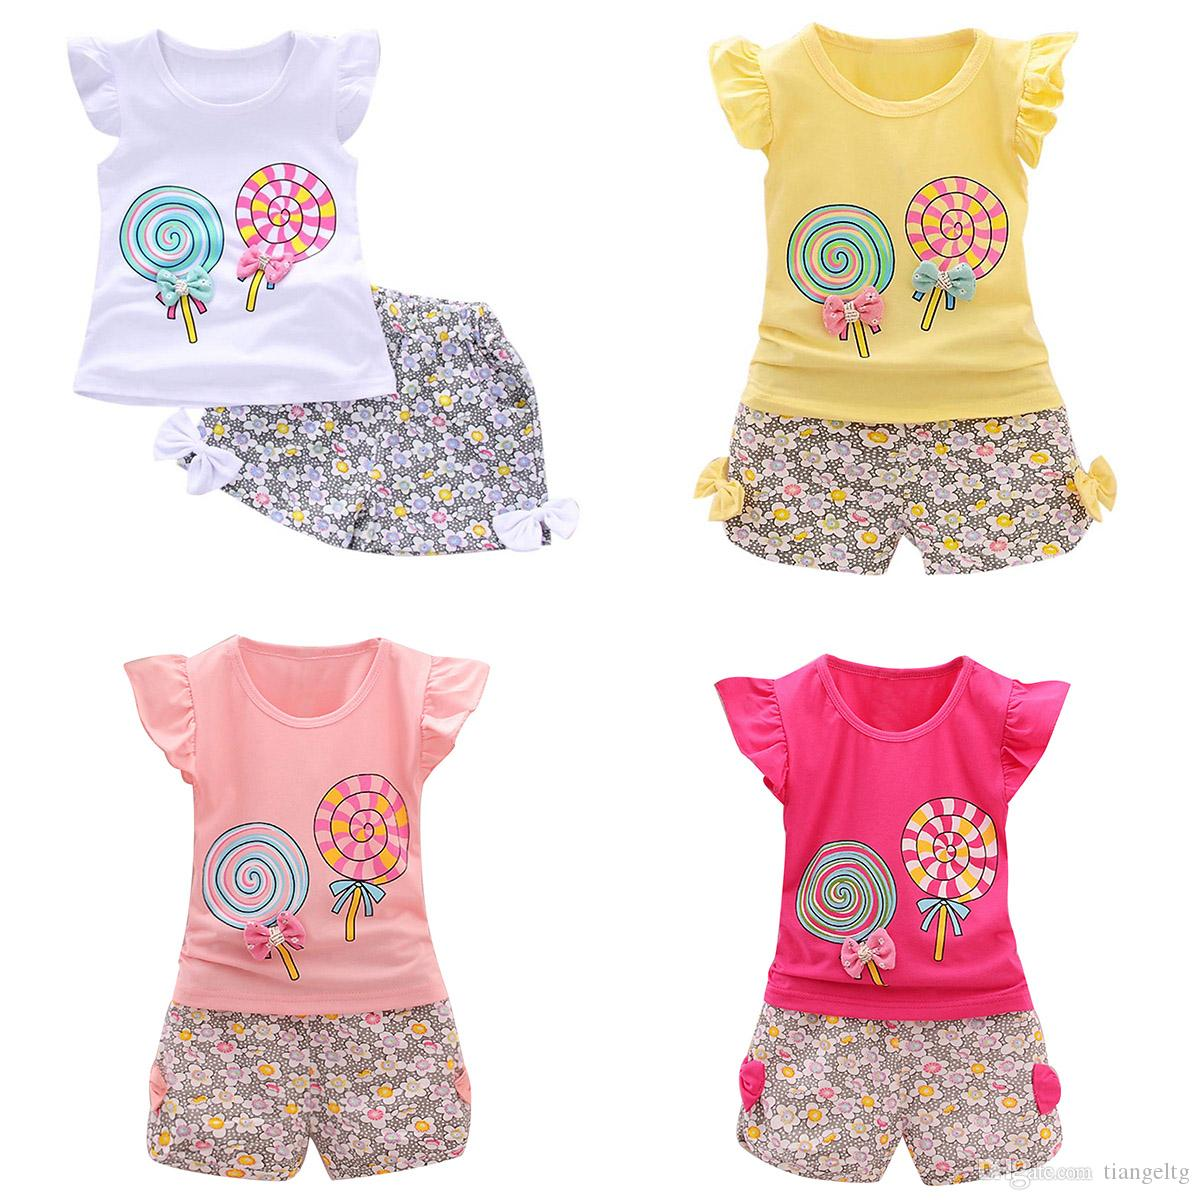 9f12ab8842b 2019 Toddler Girls Tops+Shorts Suit Lollipop Rabbits 8 Designs Cartoon  Printed Kids Two Piece Clothing Sets Lotus Leaf Sleeve Cotton 6M 4T From  Tiangeltg